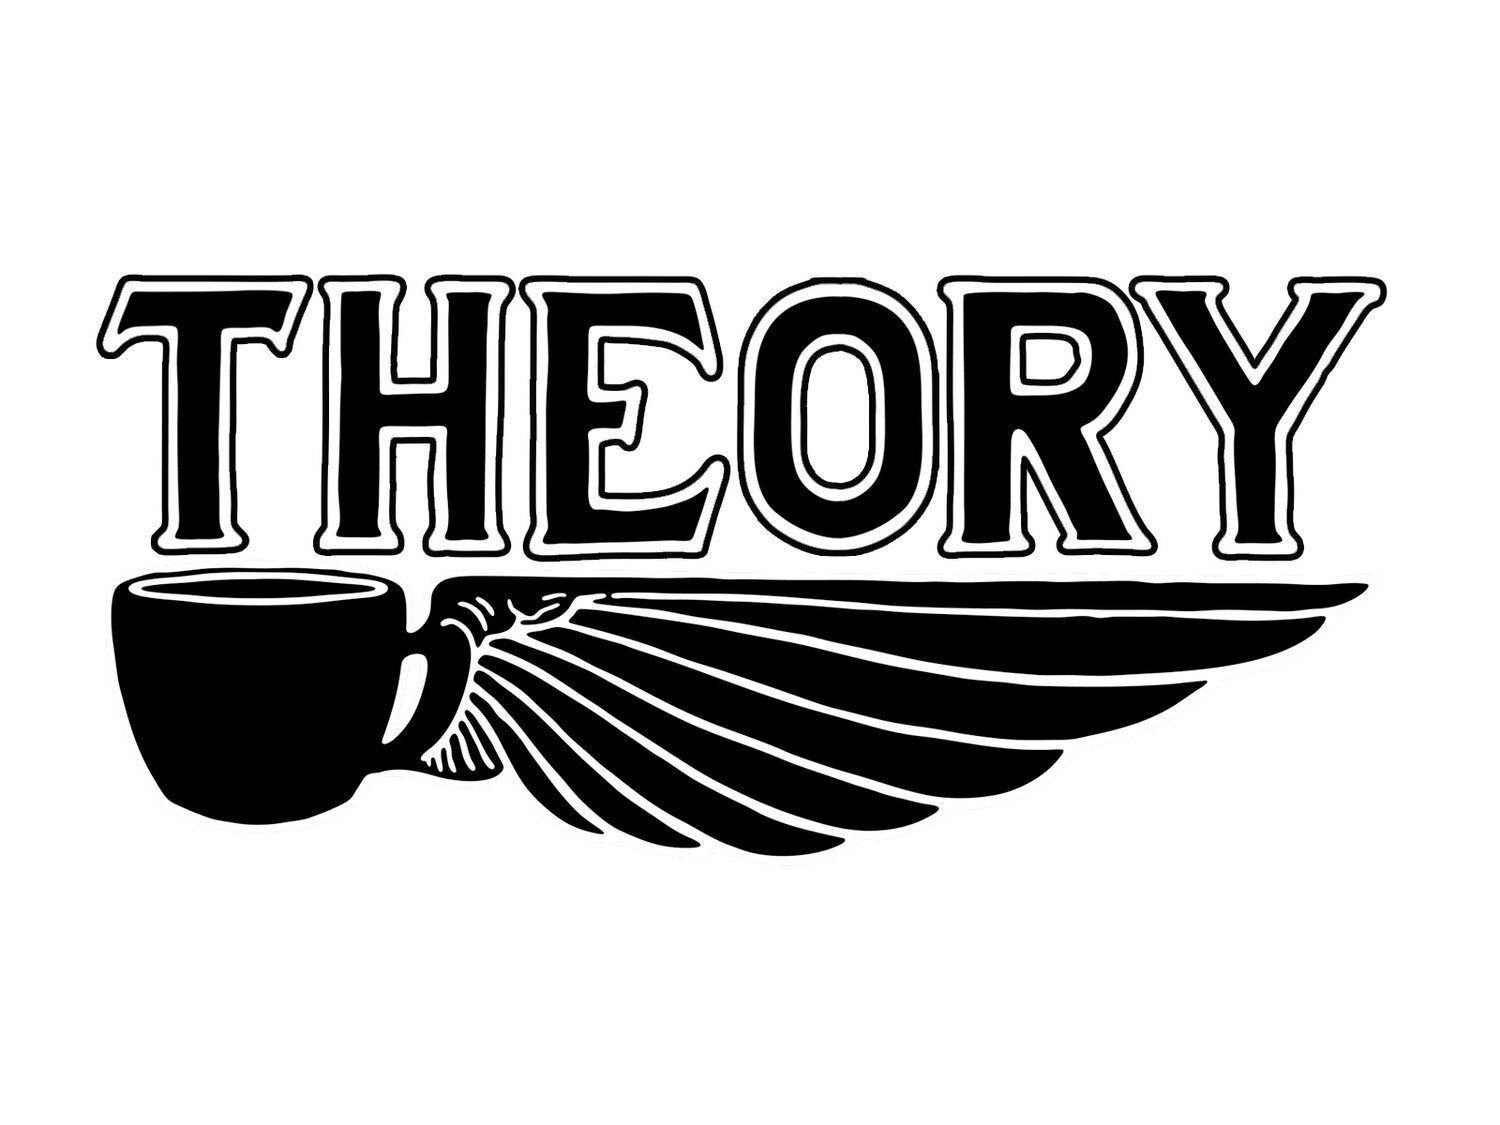 Theory Coffee Co